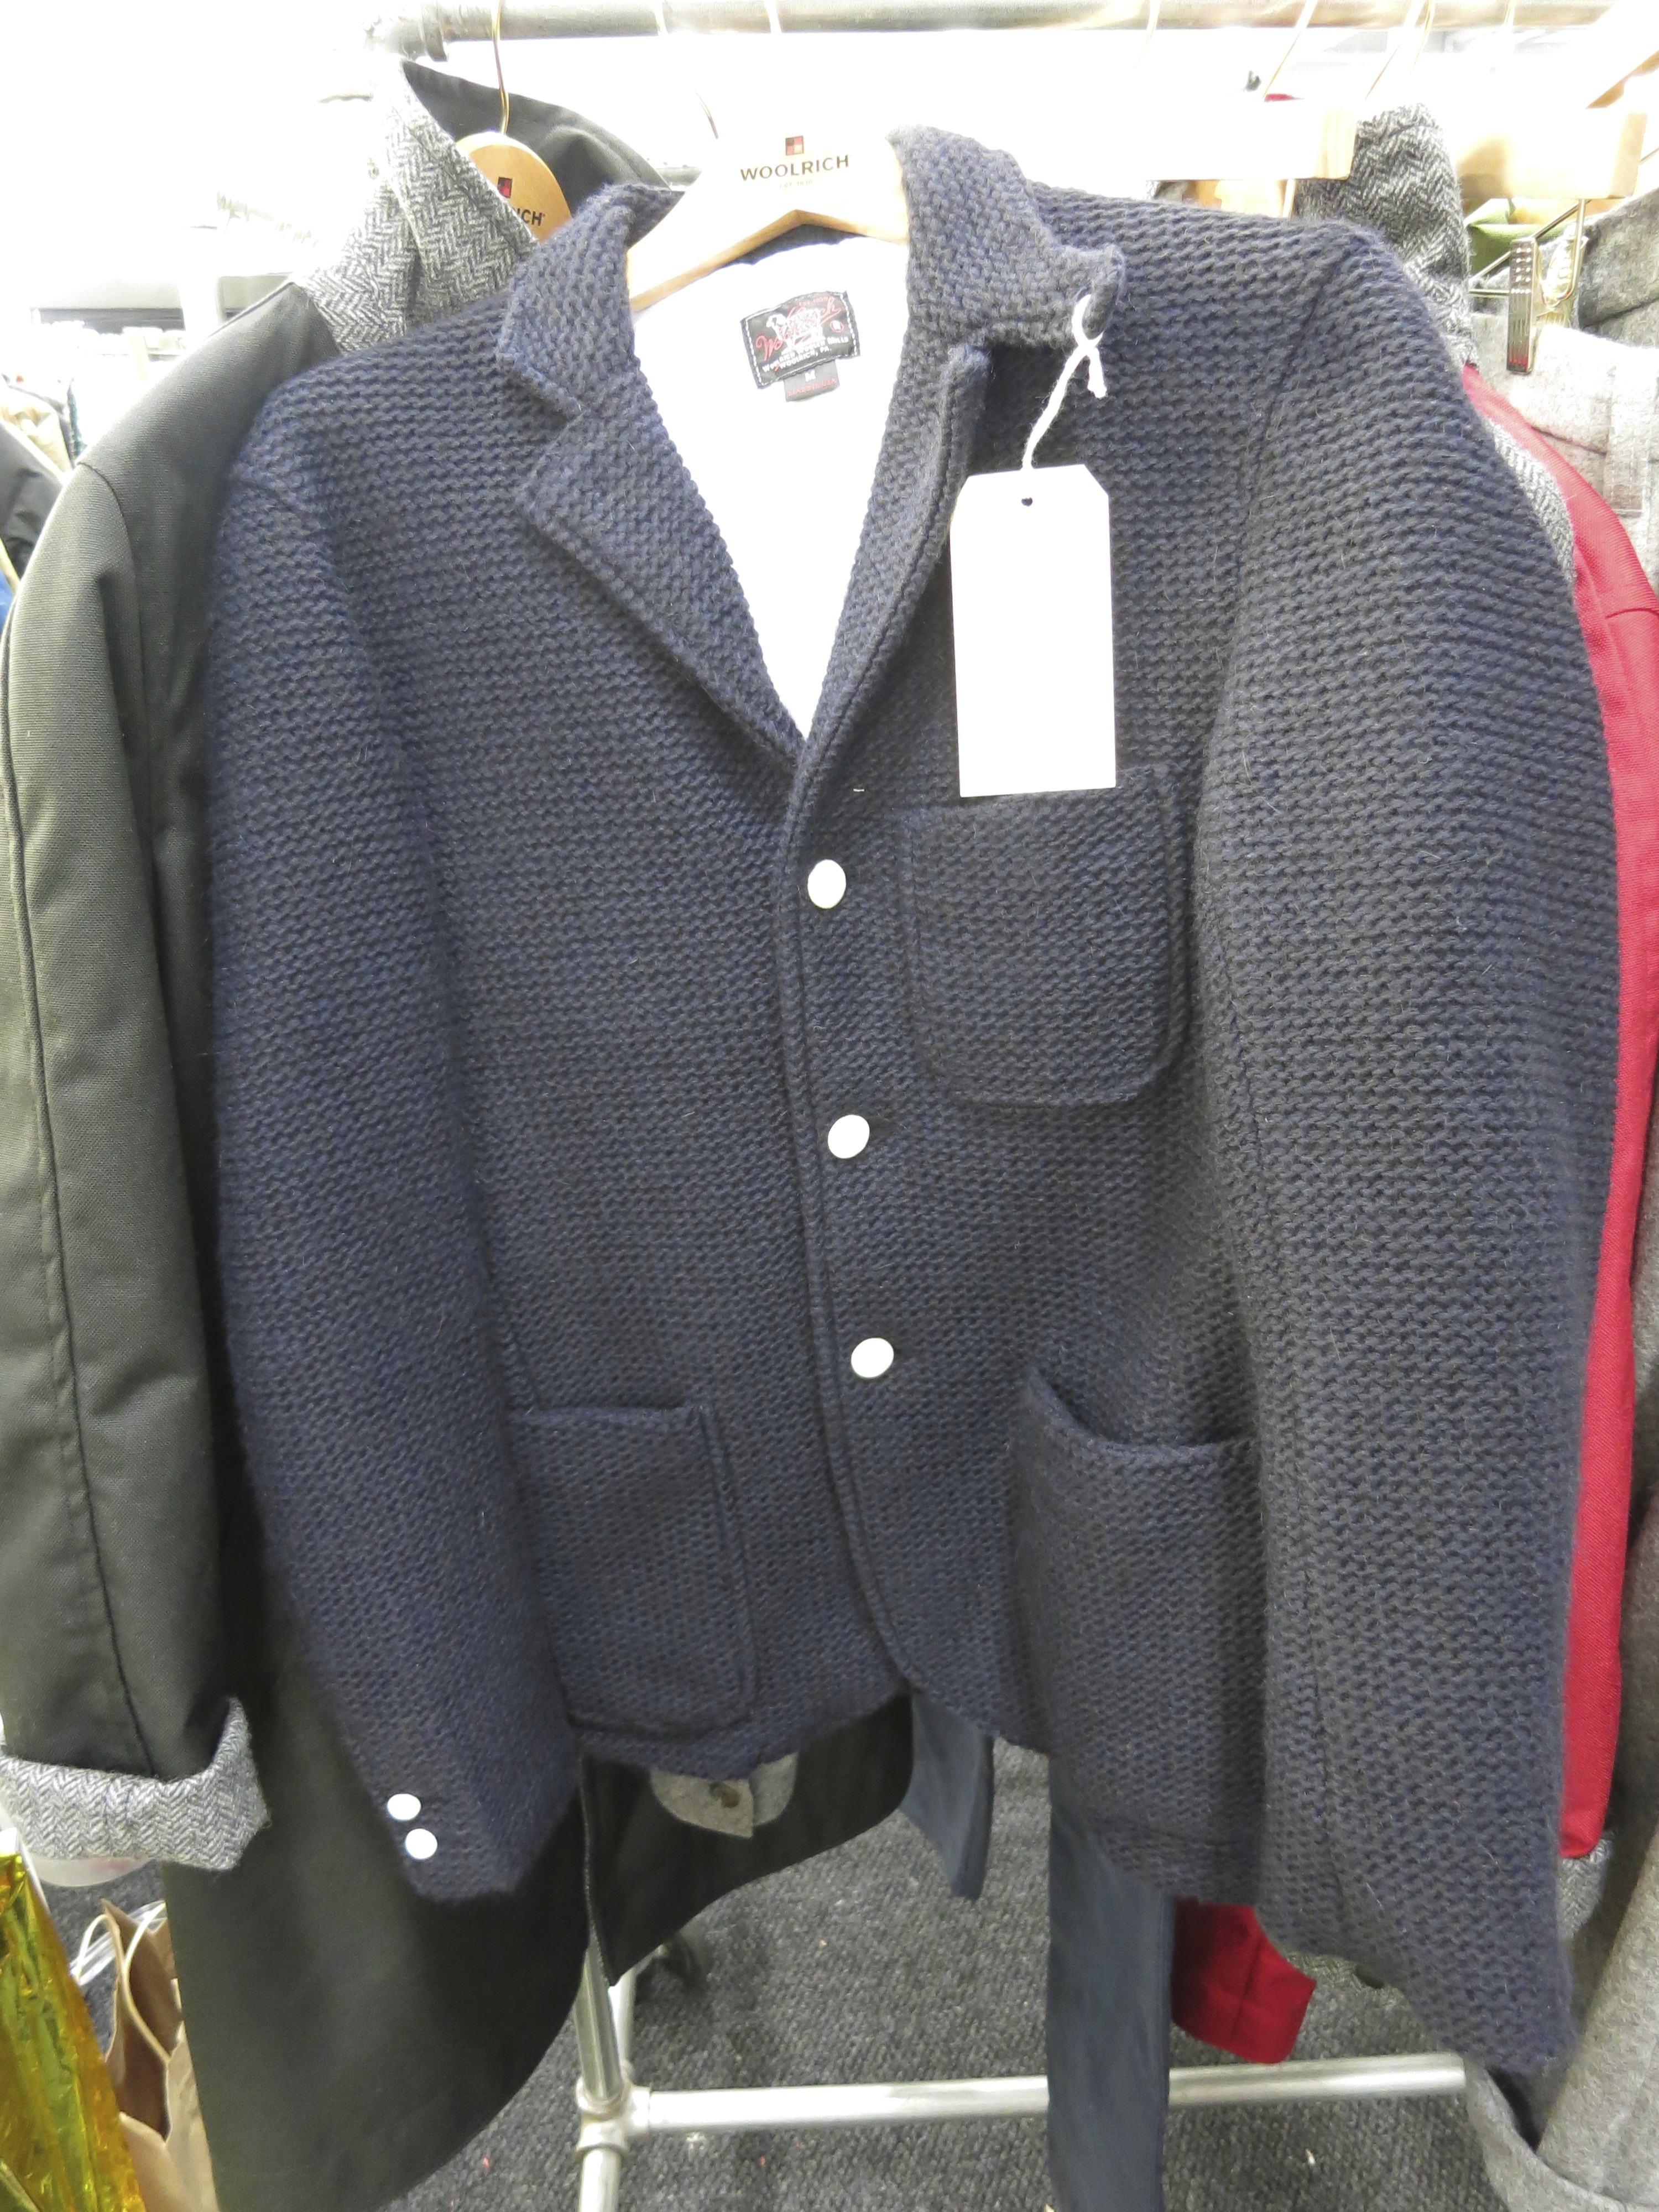 bbf5d3447d893 Into a Time Machine: Woolrich Woolen Mills at Capsule New York ...